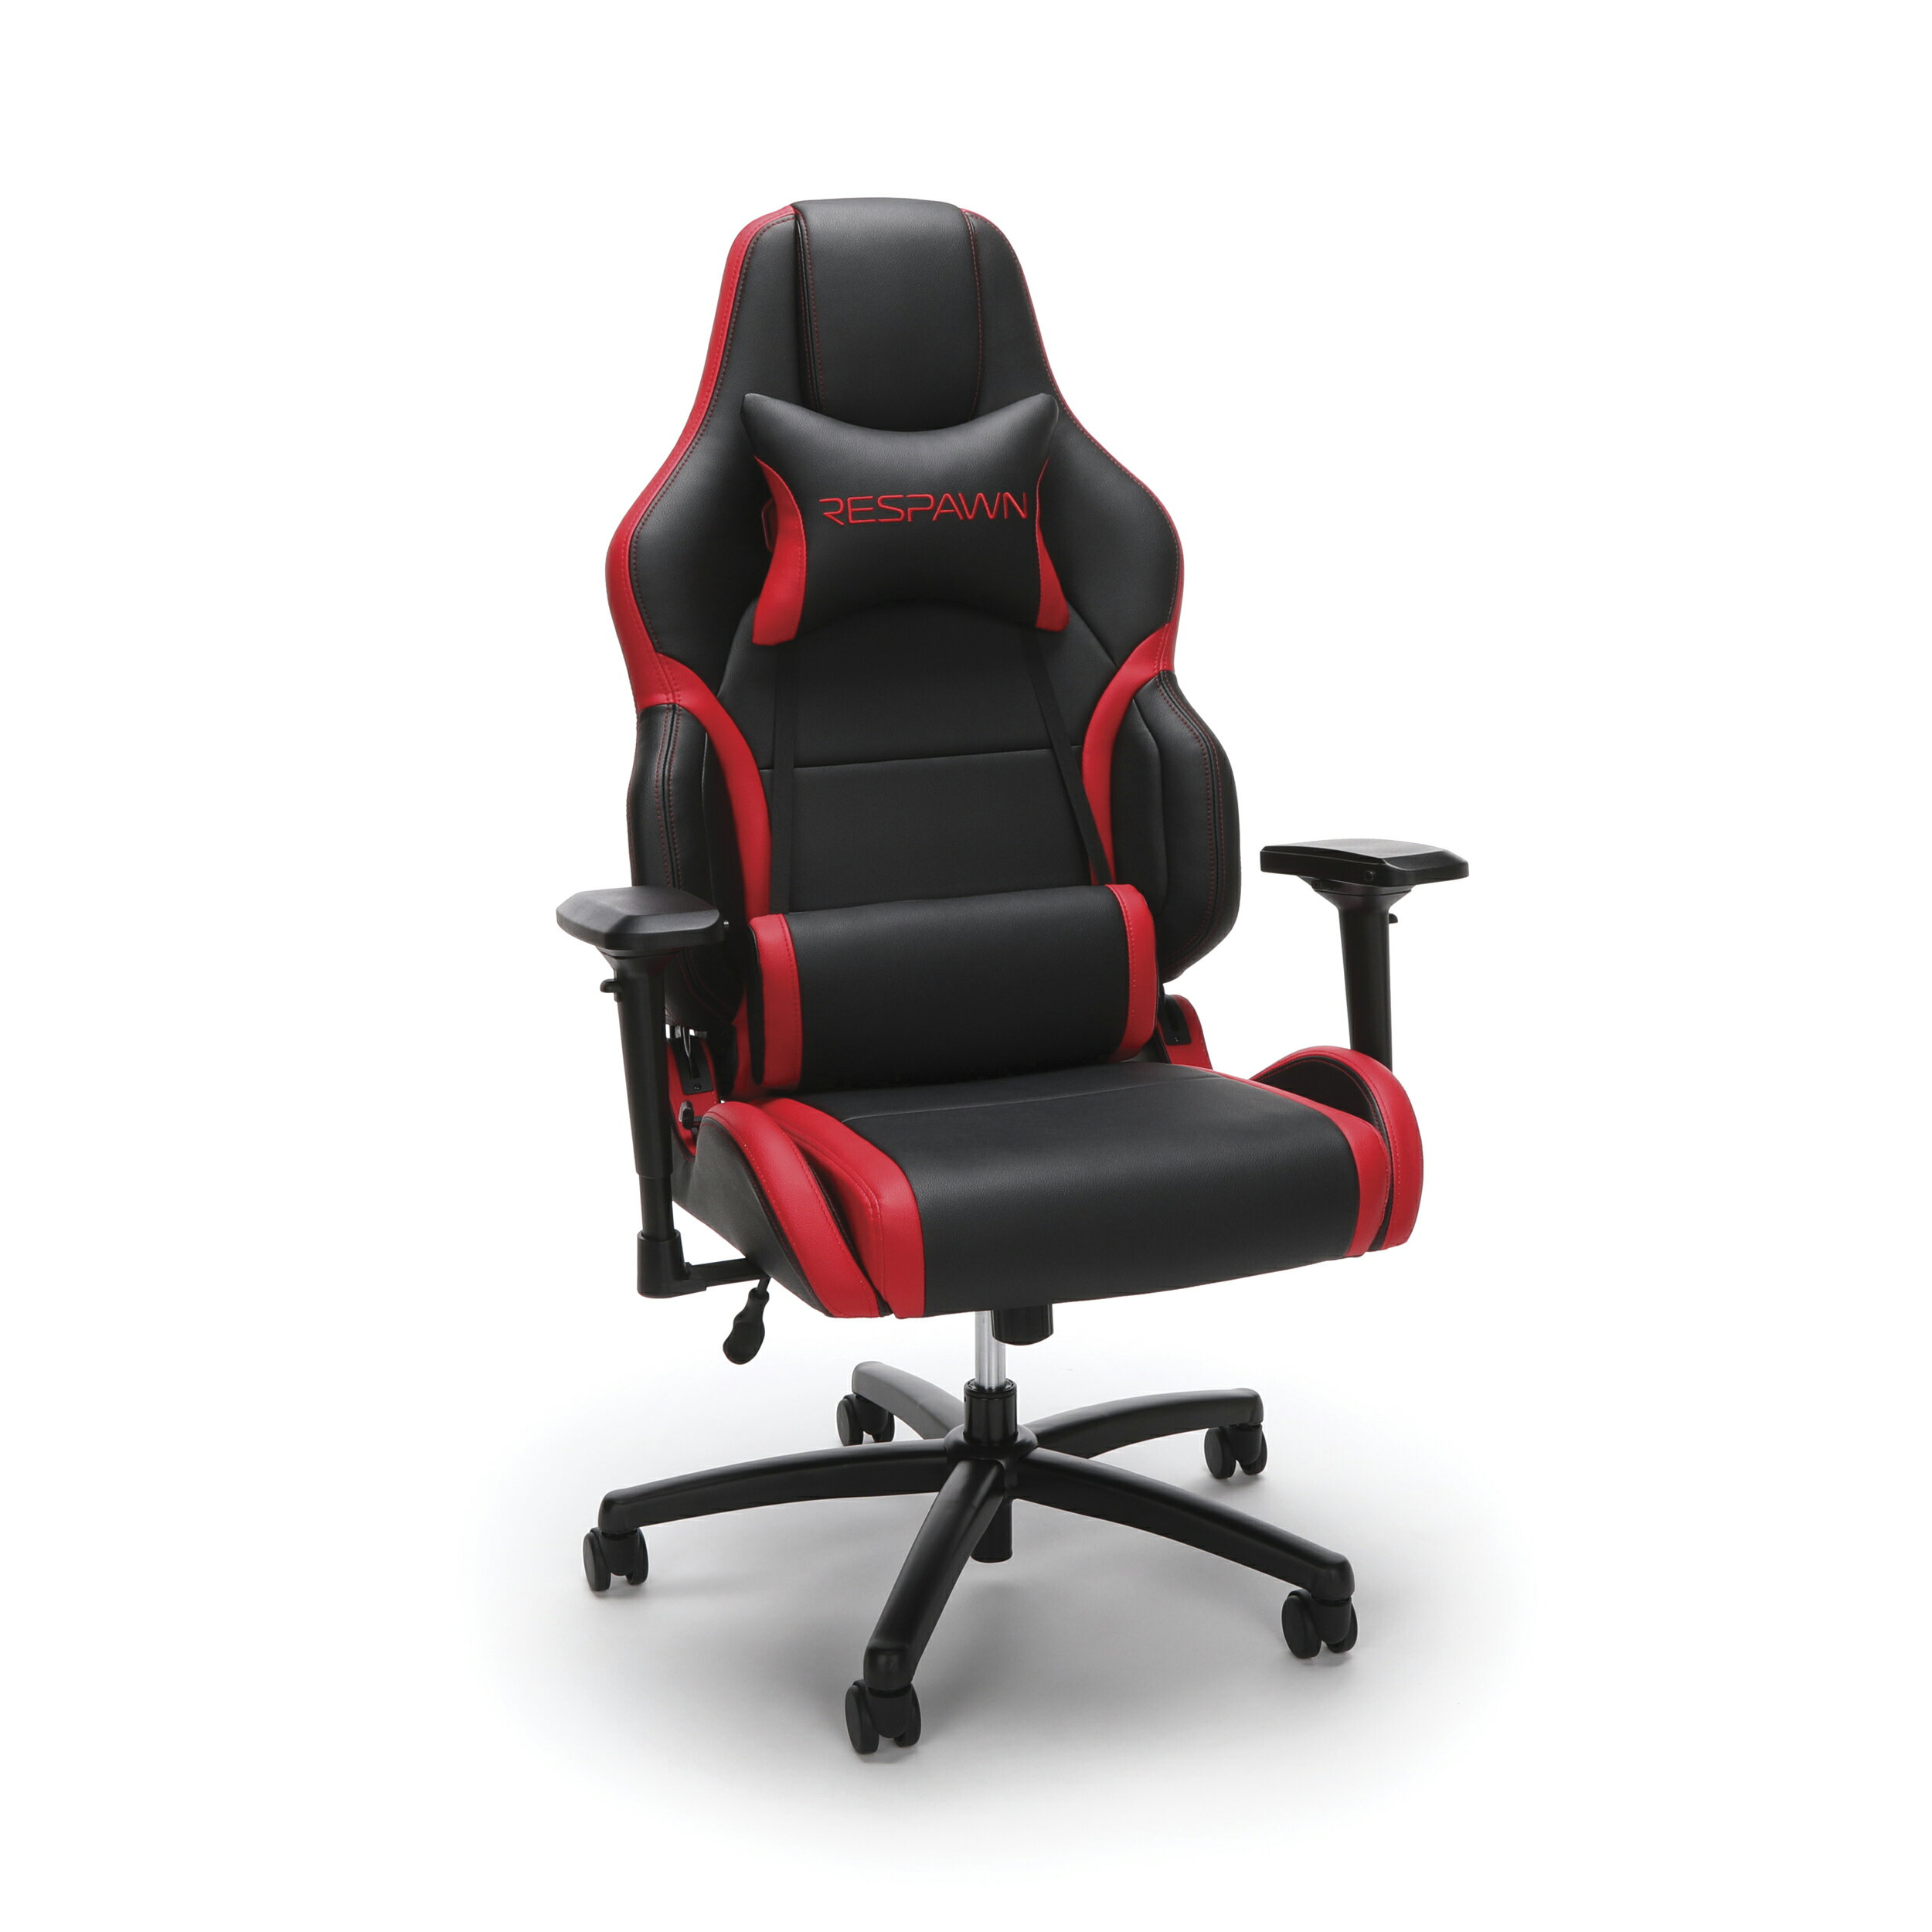 RESPAWN-400 Racing Style Gaming Chair - Big and Tall Leather Chair, Office or Gaming Chair (RSP-400) 3